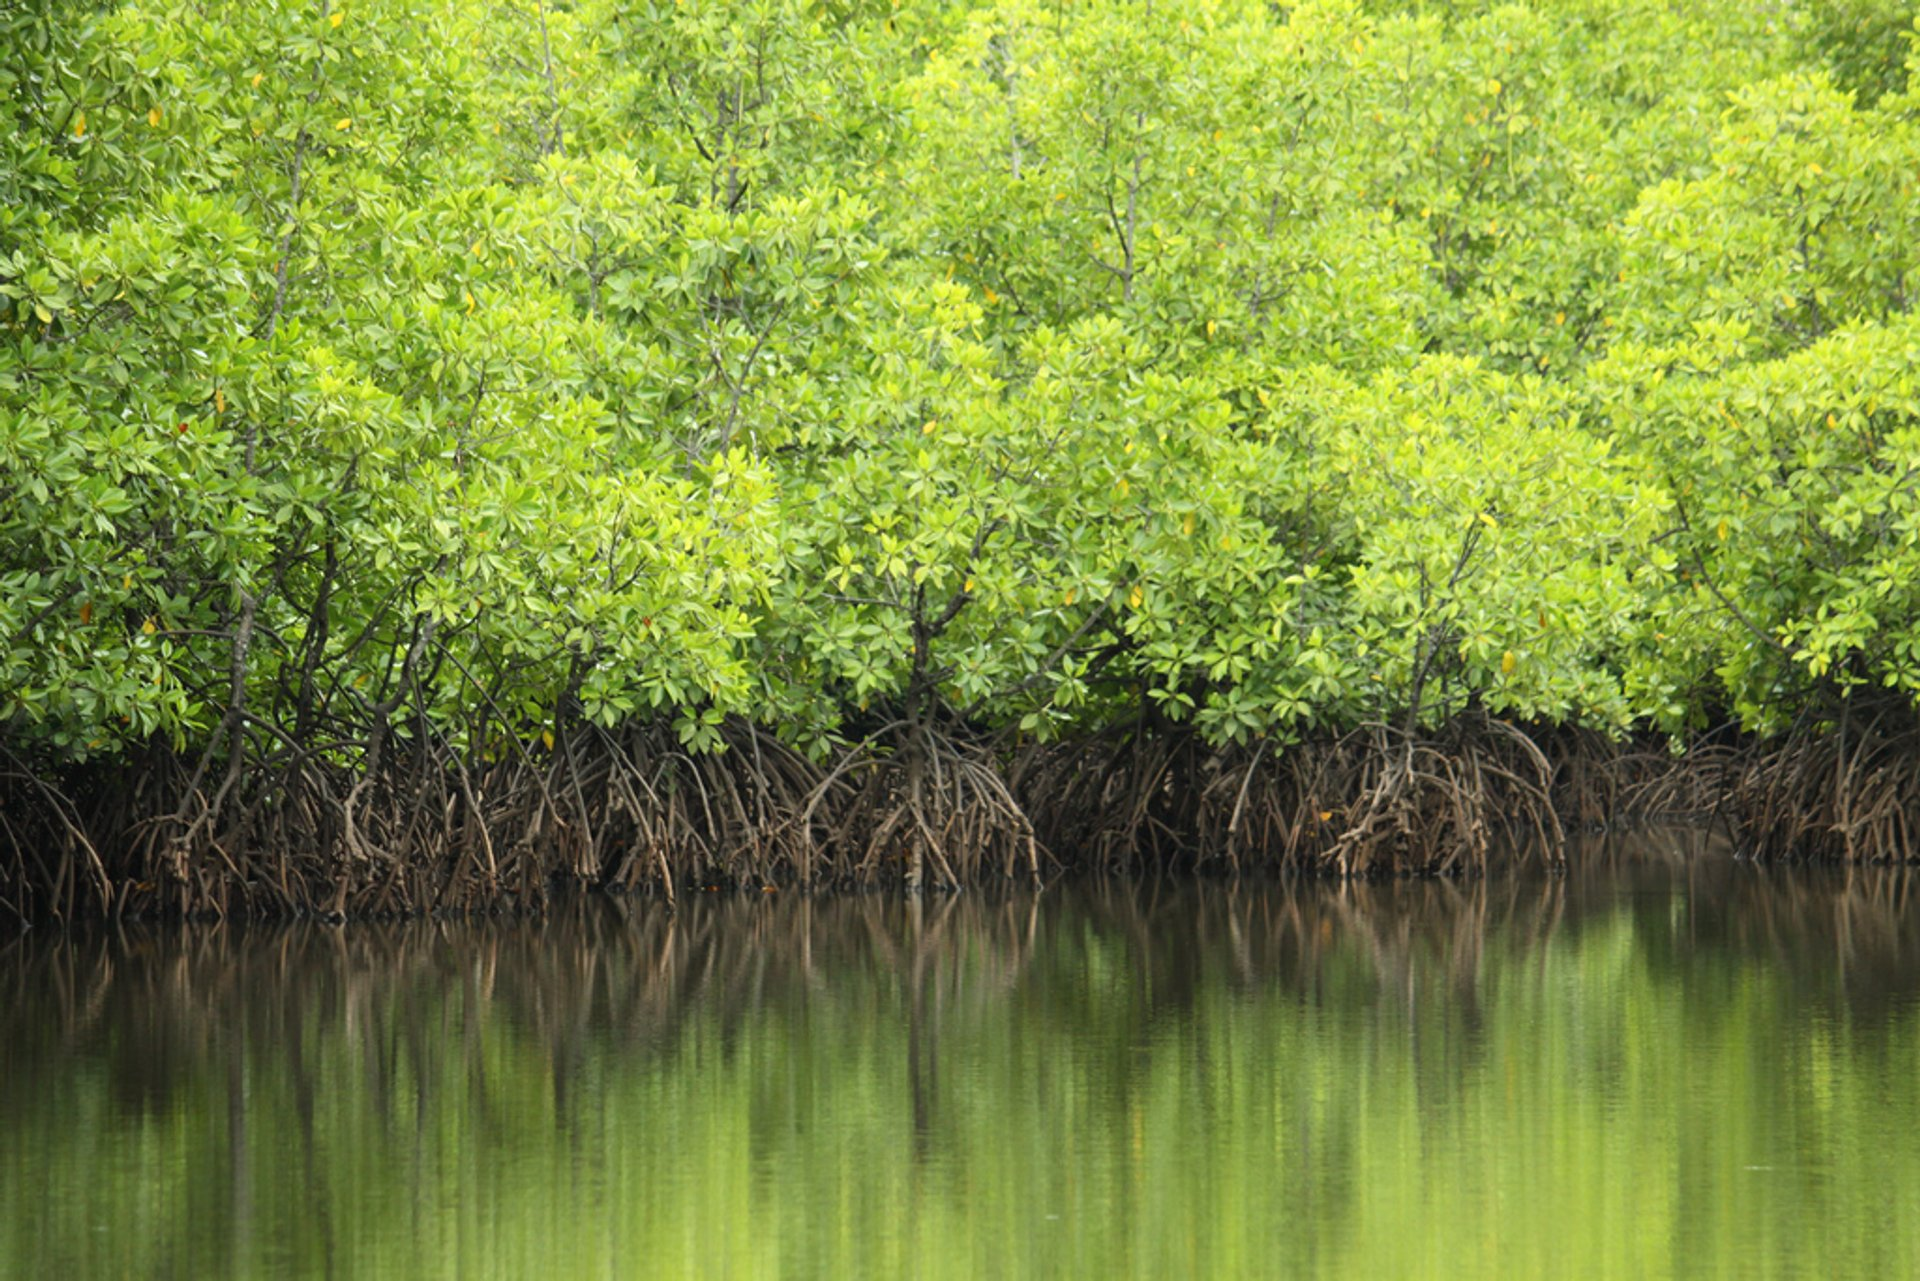 Mangrove Forests in Malaysia 2019 - Best Time